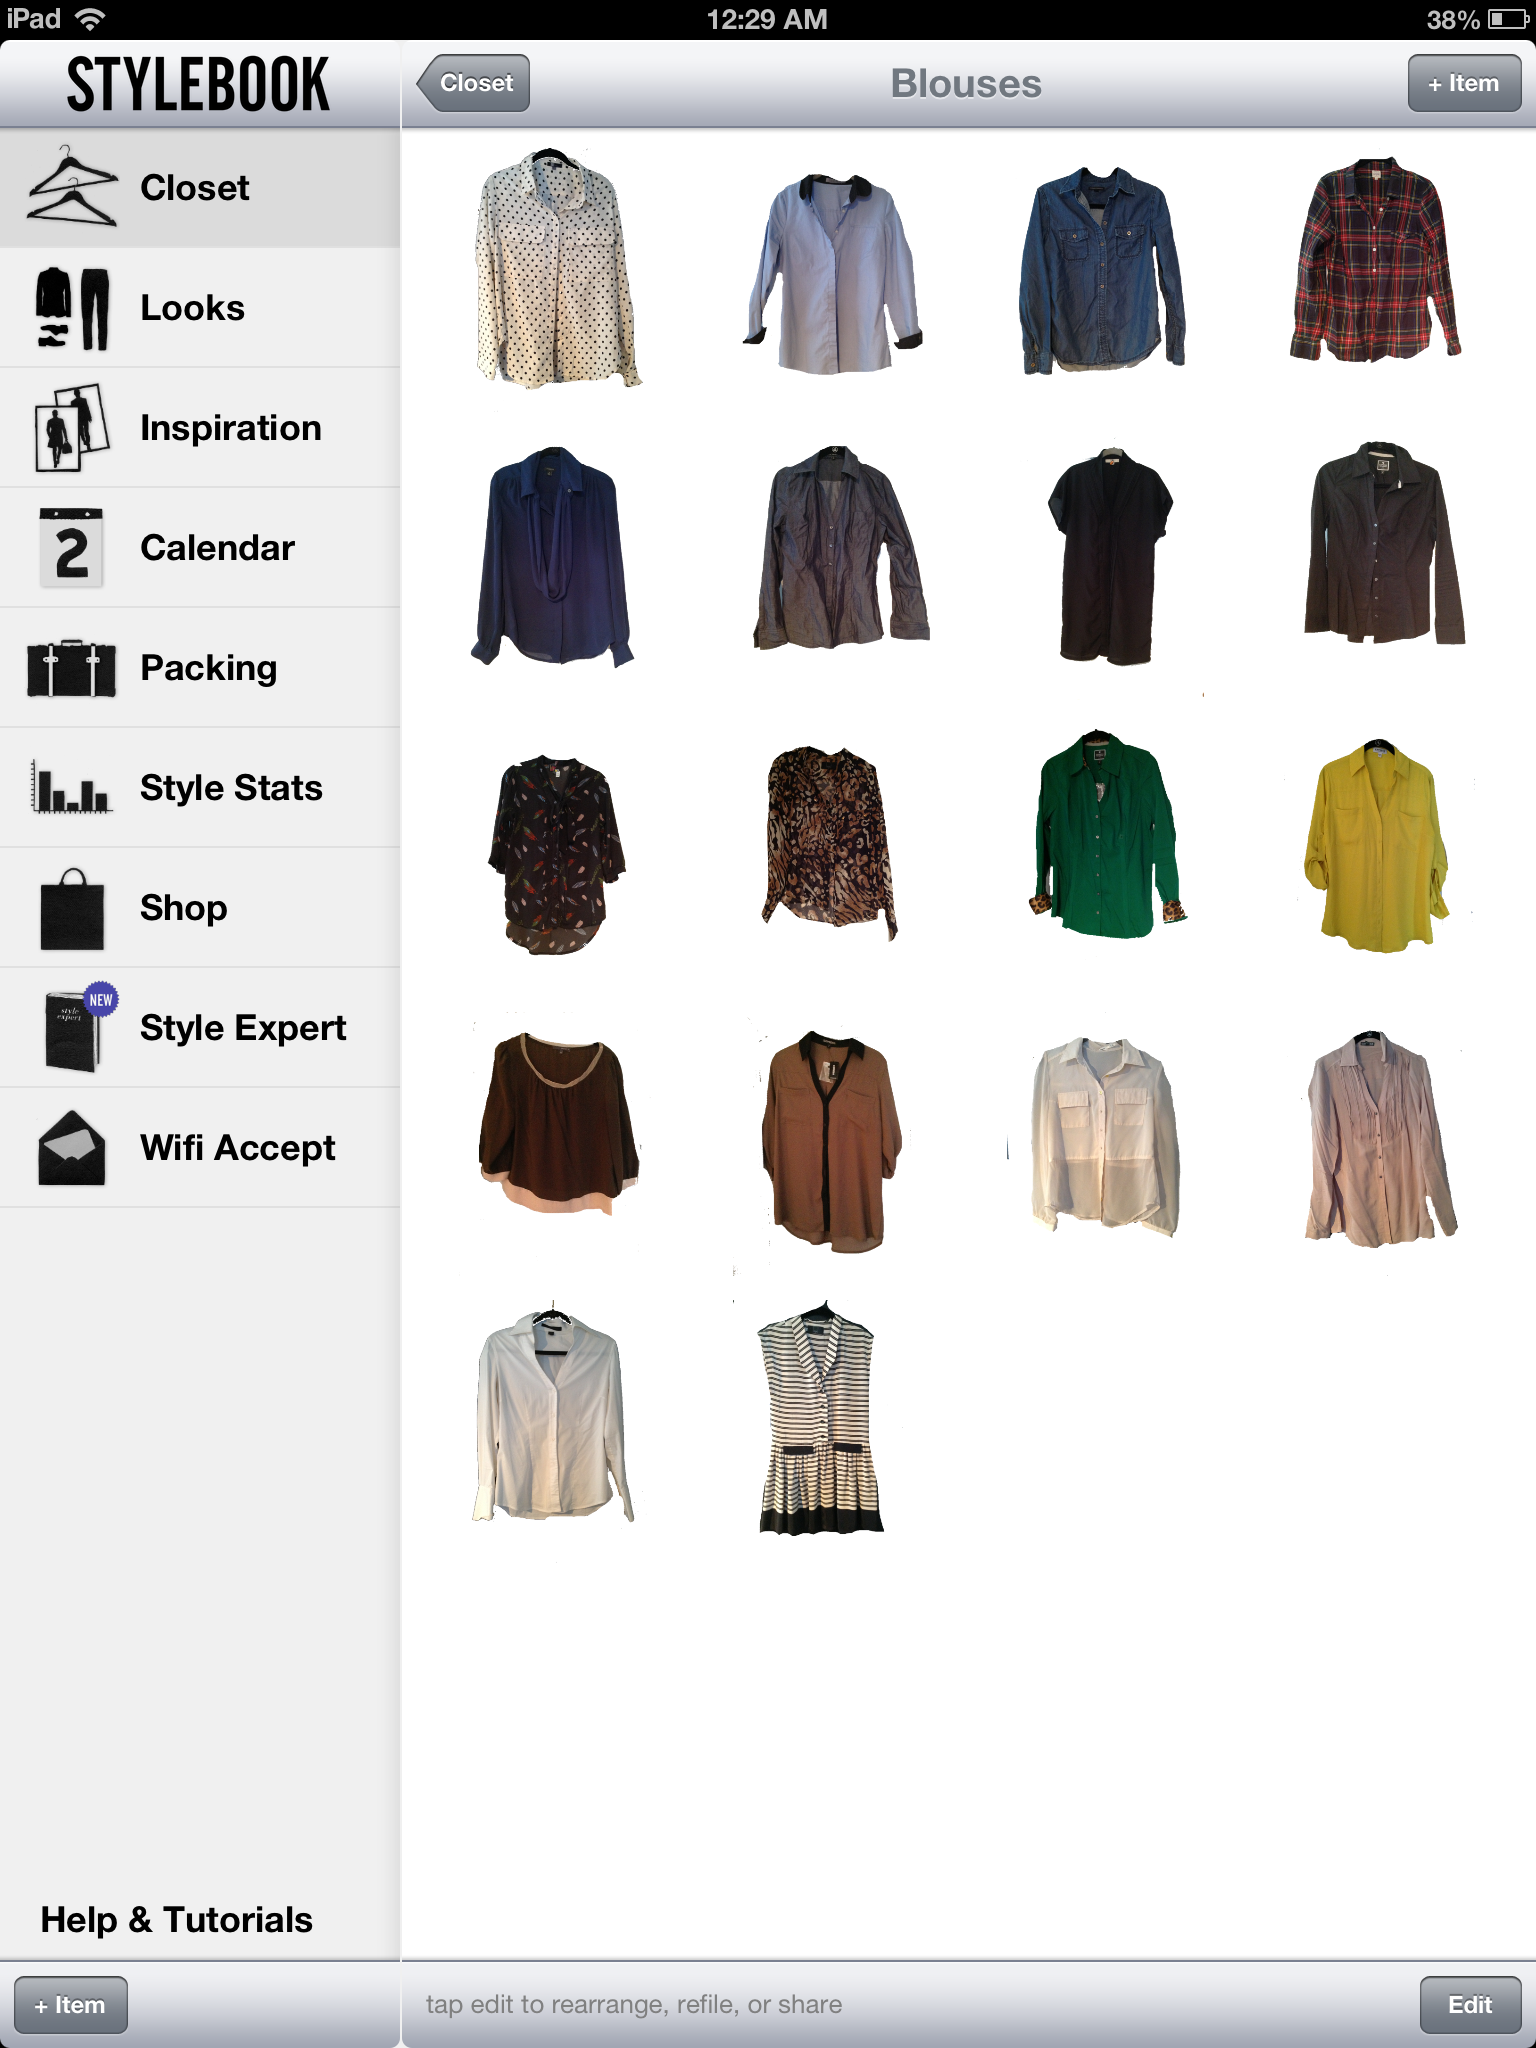 Here is a screenshot of my blouses that I entered into the app. You can add whatever categories that you want and make categories for the looks as well. So that way you can have outfits for work separate from causal or weekend outfits.